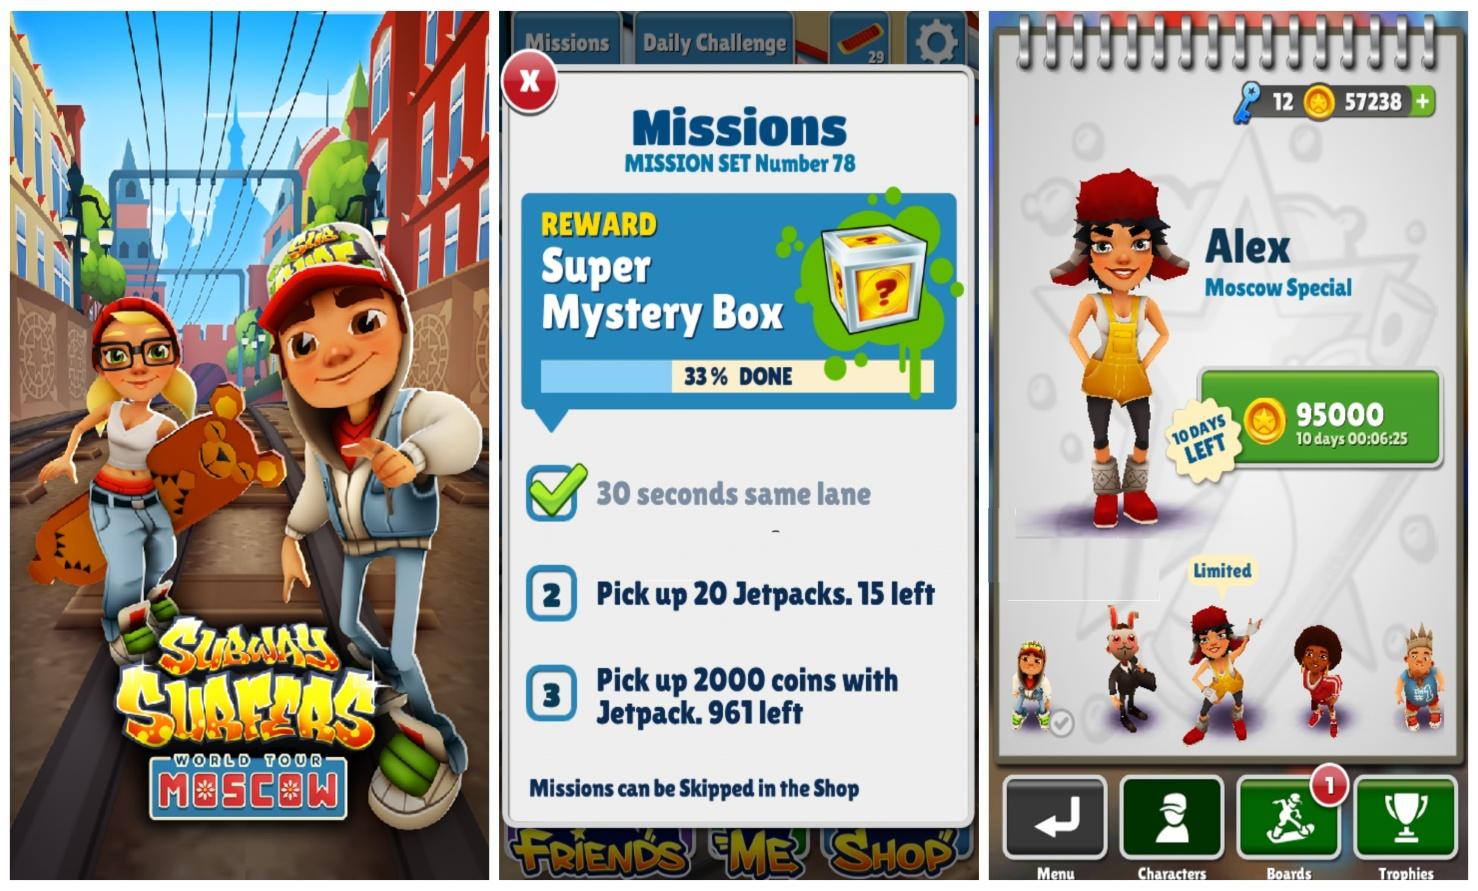 https://meowbilli.xyz/wp-content/uploads/2019/02/Subway-surfers-mod-apk-features.jpg